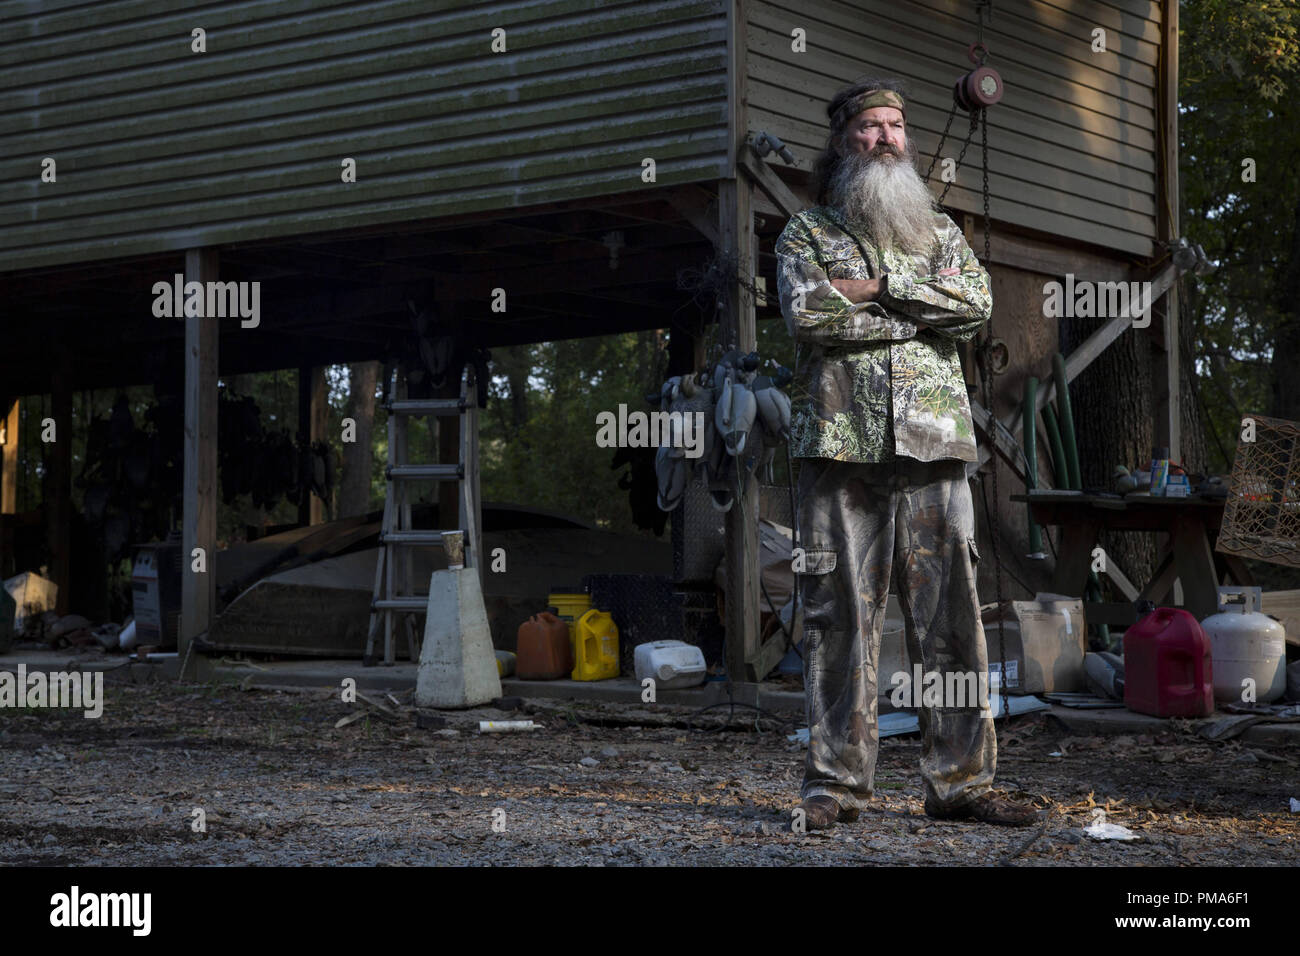 Phil Robertson in A&E's Duck Dynasty. - Stock Image